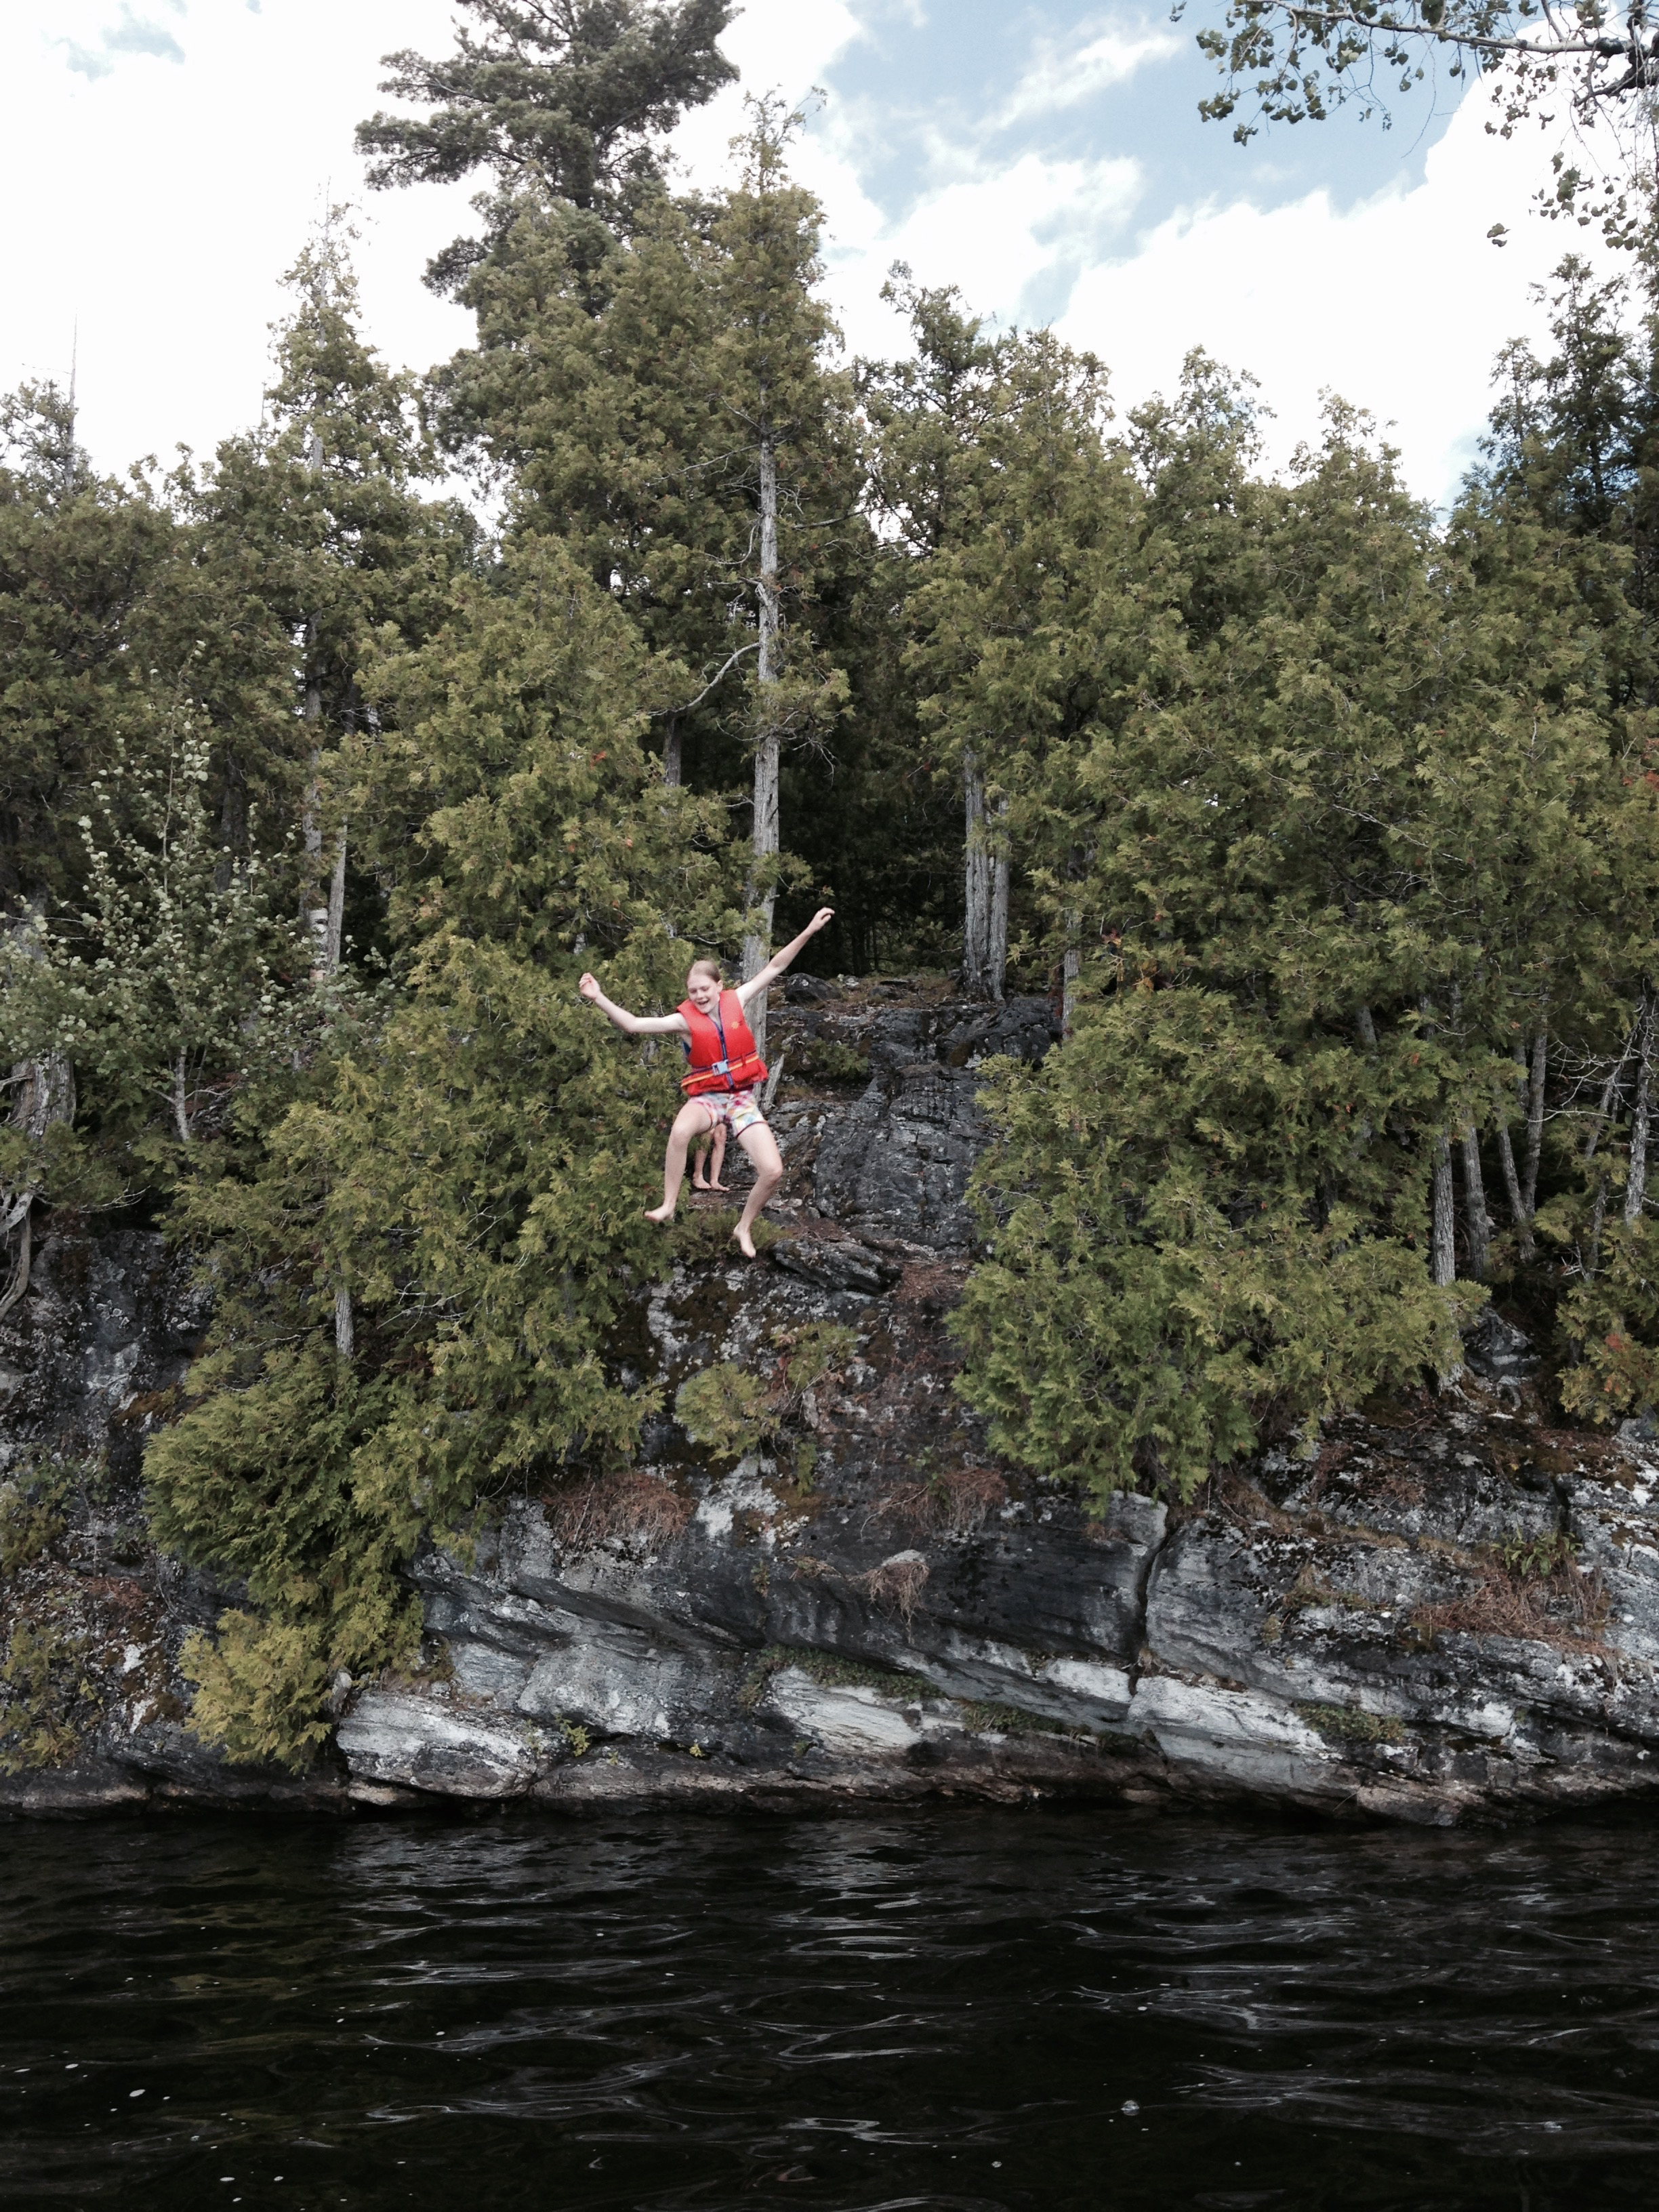 Summer Fun Begins with Rock Jumping!